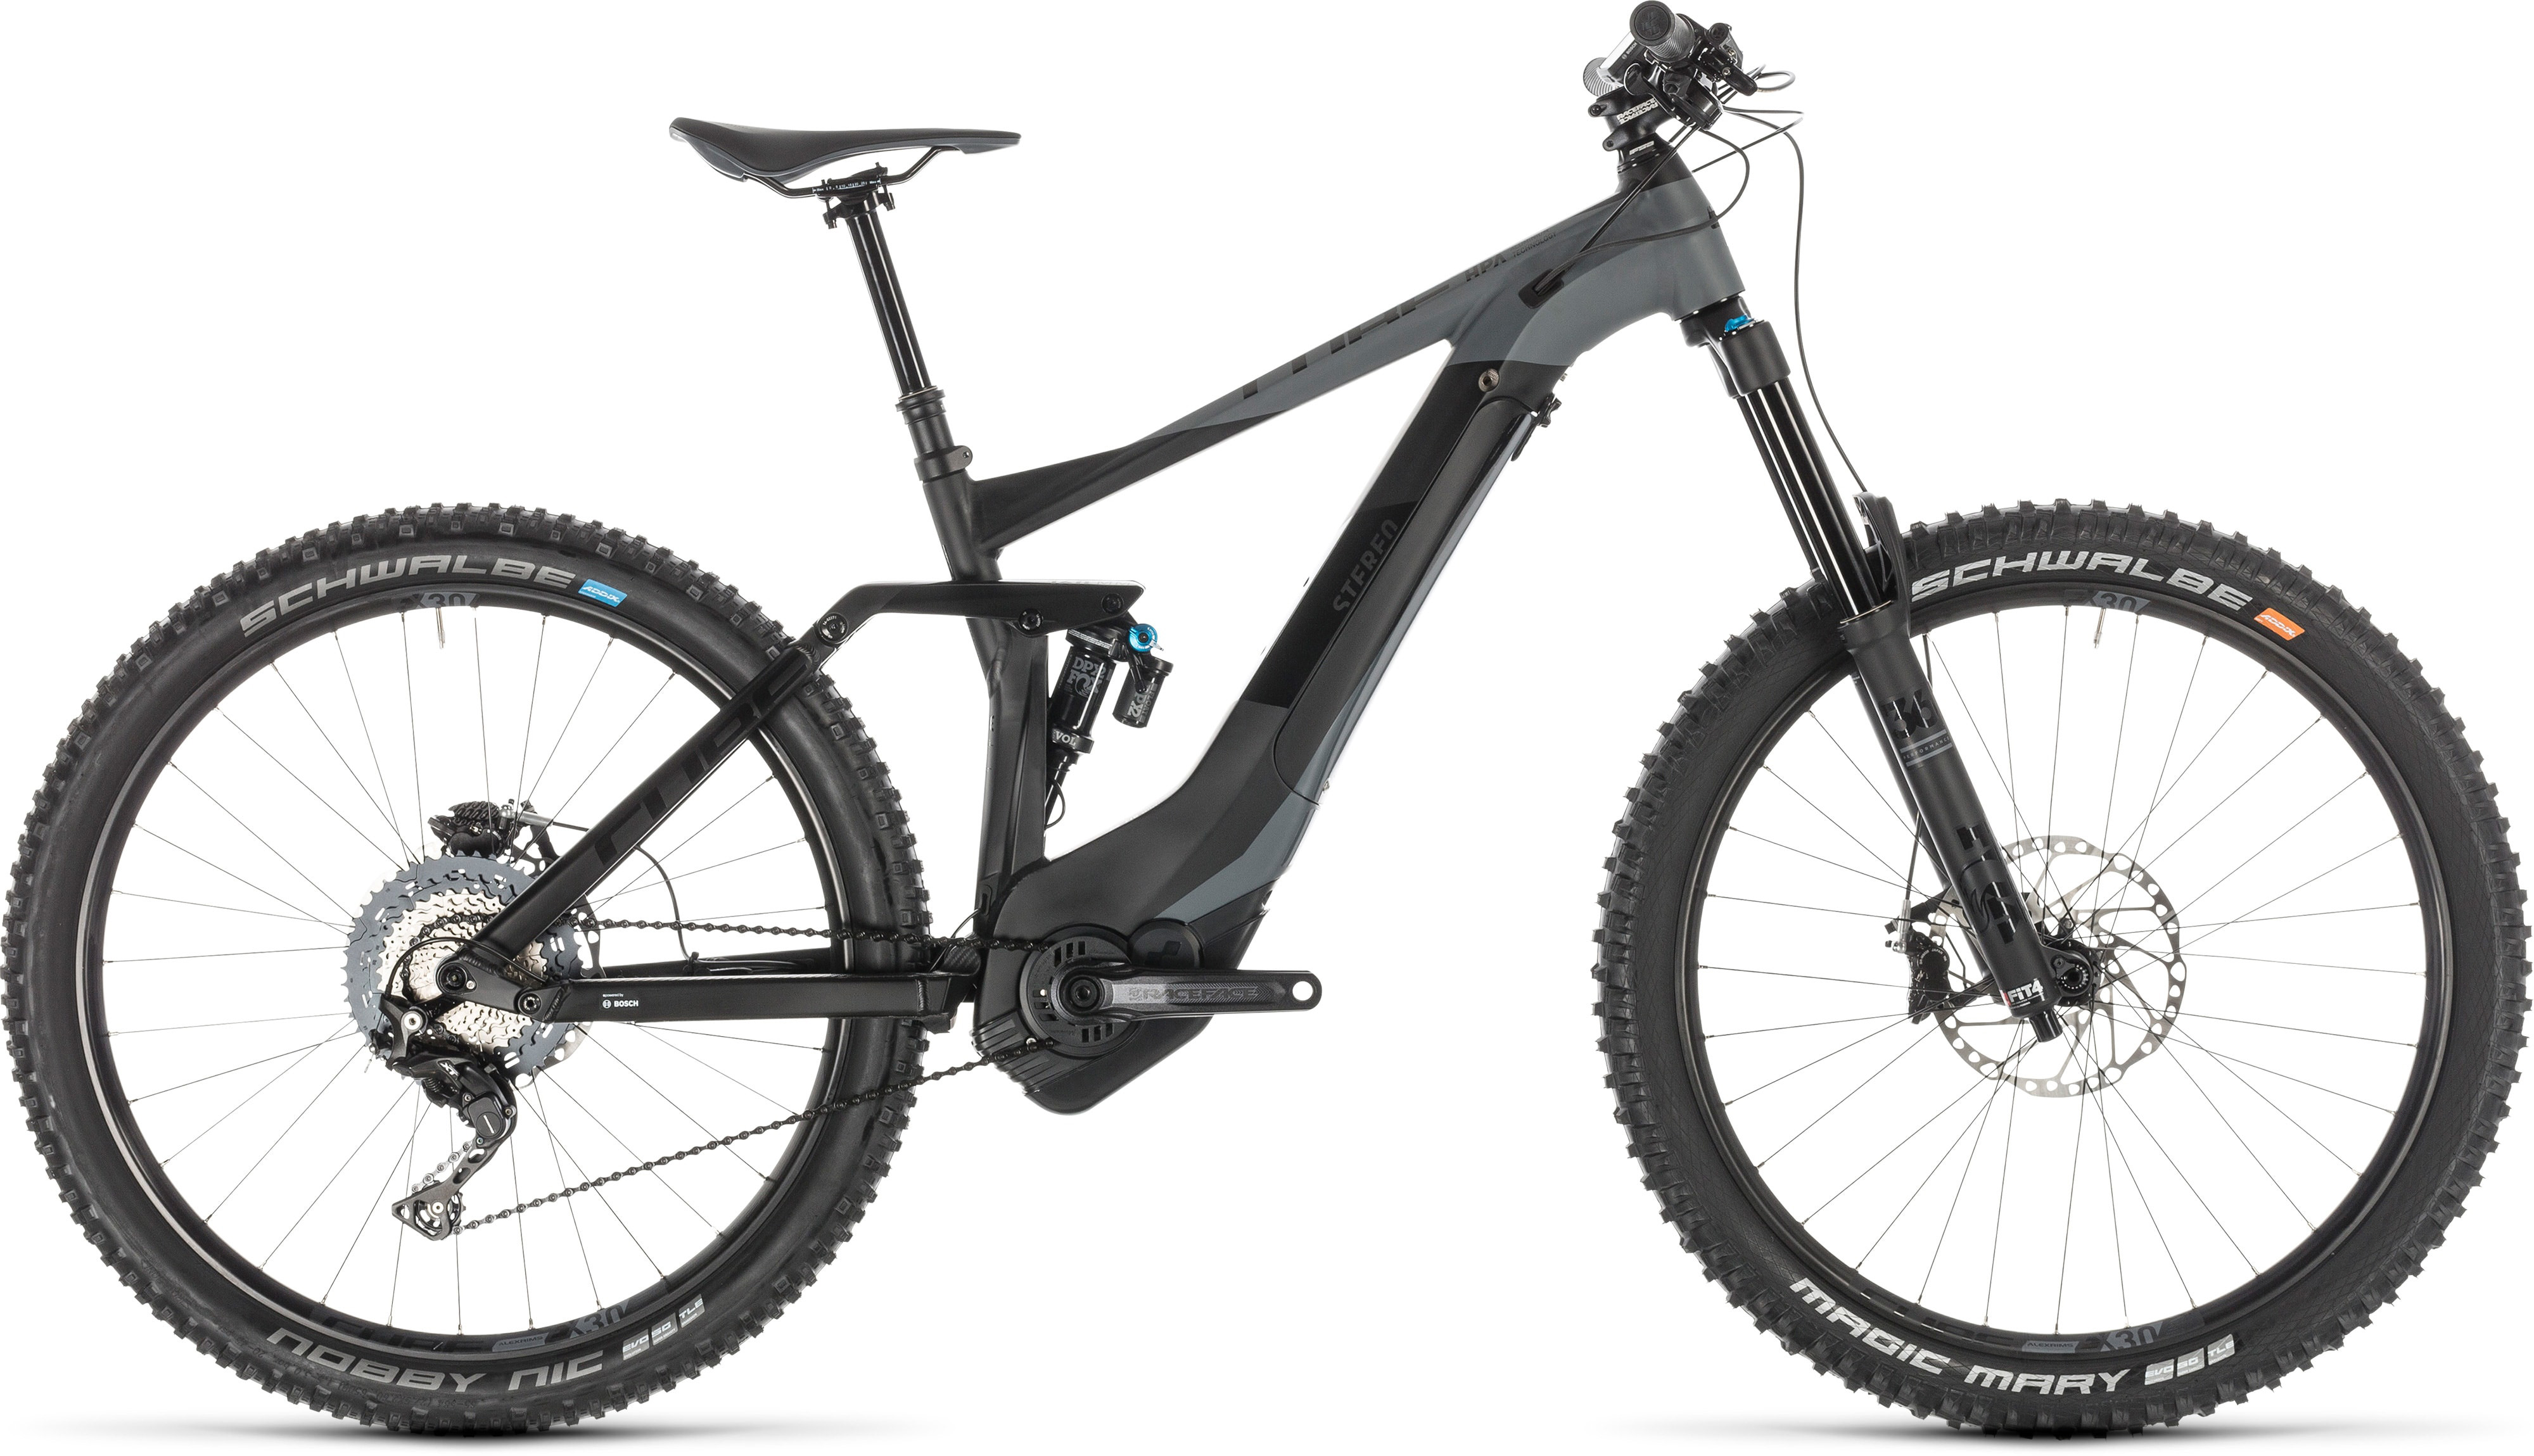 Cube Stereo Hybrid 160 SL 500 27.5 E-Bike (2019) | City